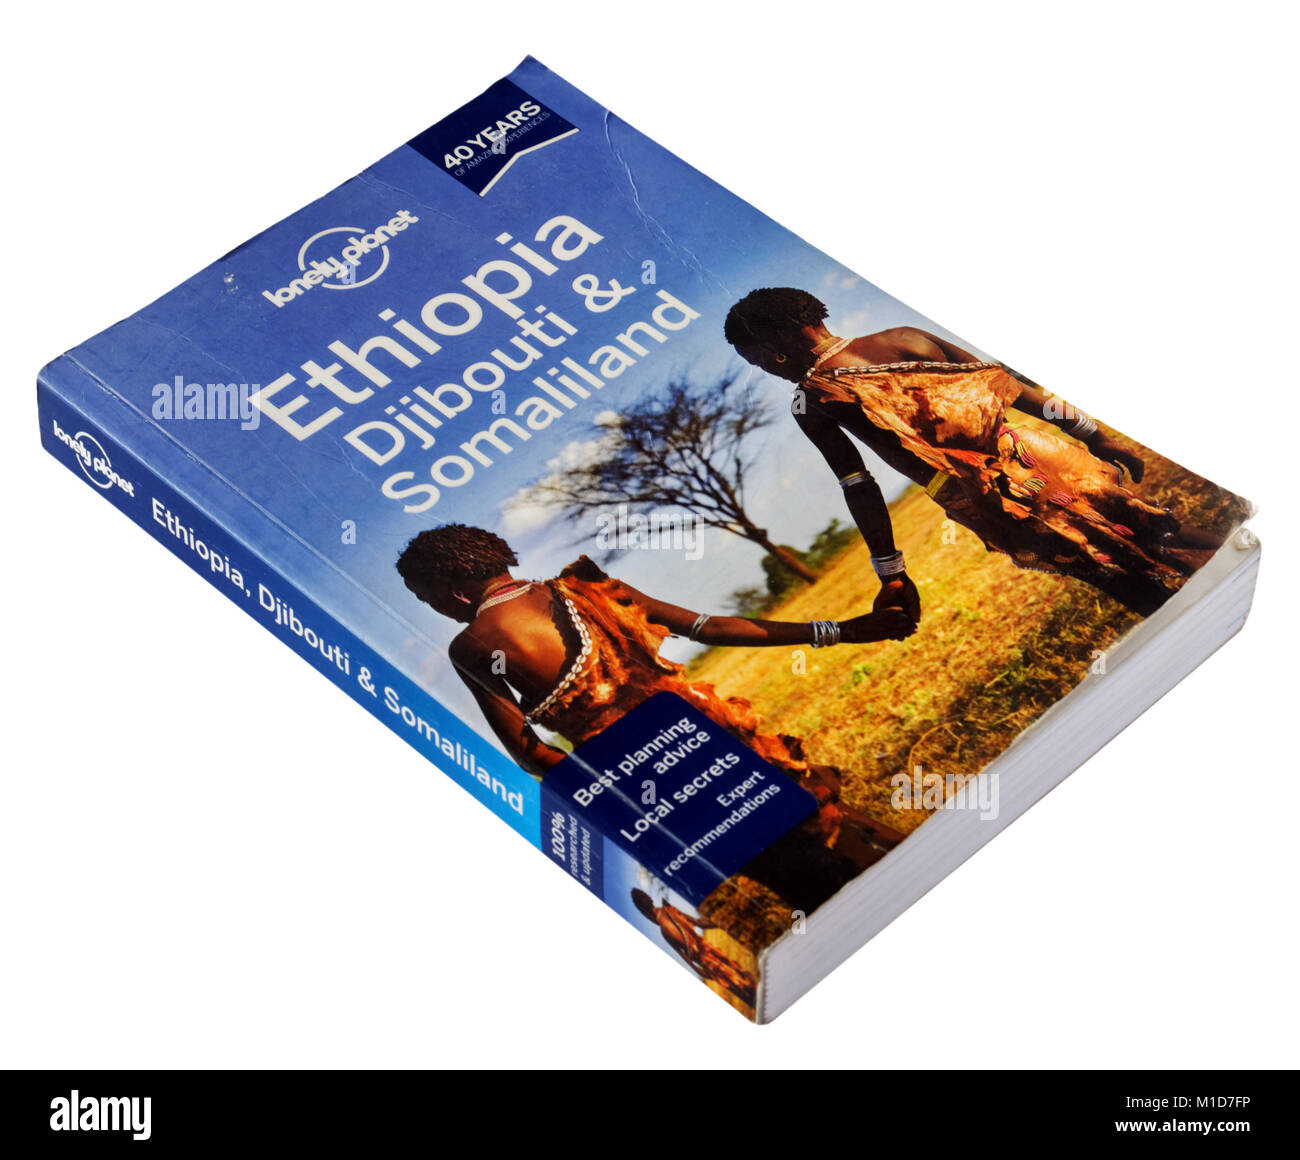 The Lonely Planet guide to Ethiopia, Djibouti and Somaliland - Stock Image